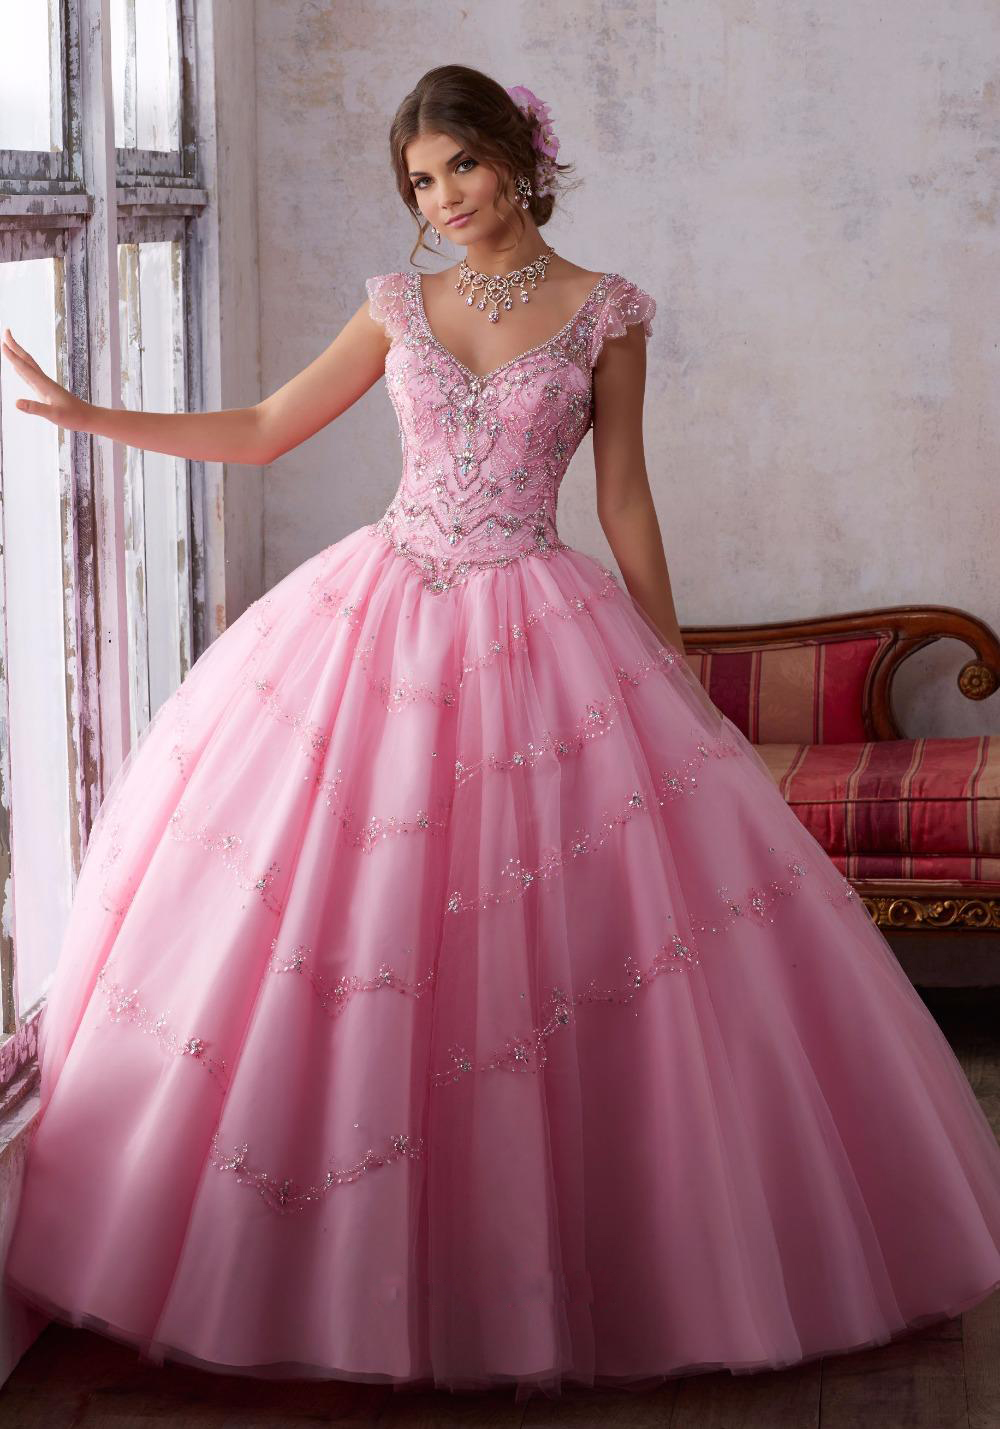 Sweetheart Aqua Ball Gown Lace Ball Gown Pink Purple Quinceanera Dress 2017 Beaded Organza Sweet 16 Dresses Vestidos De 15